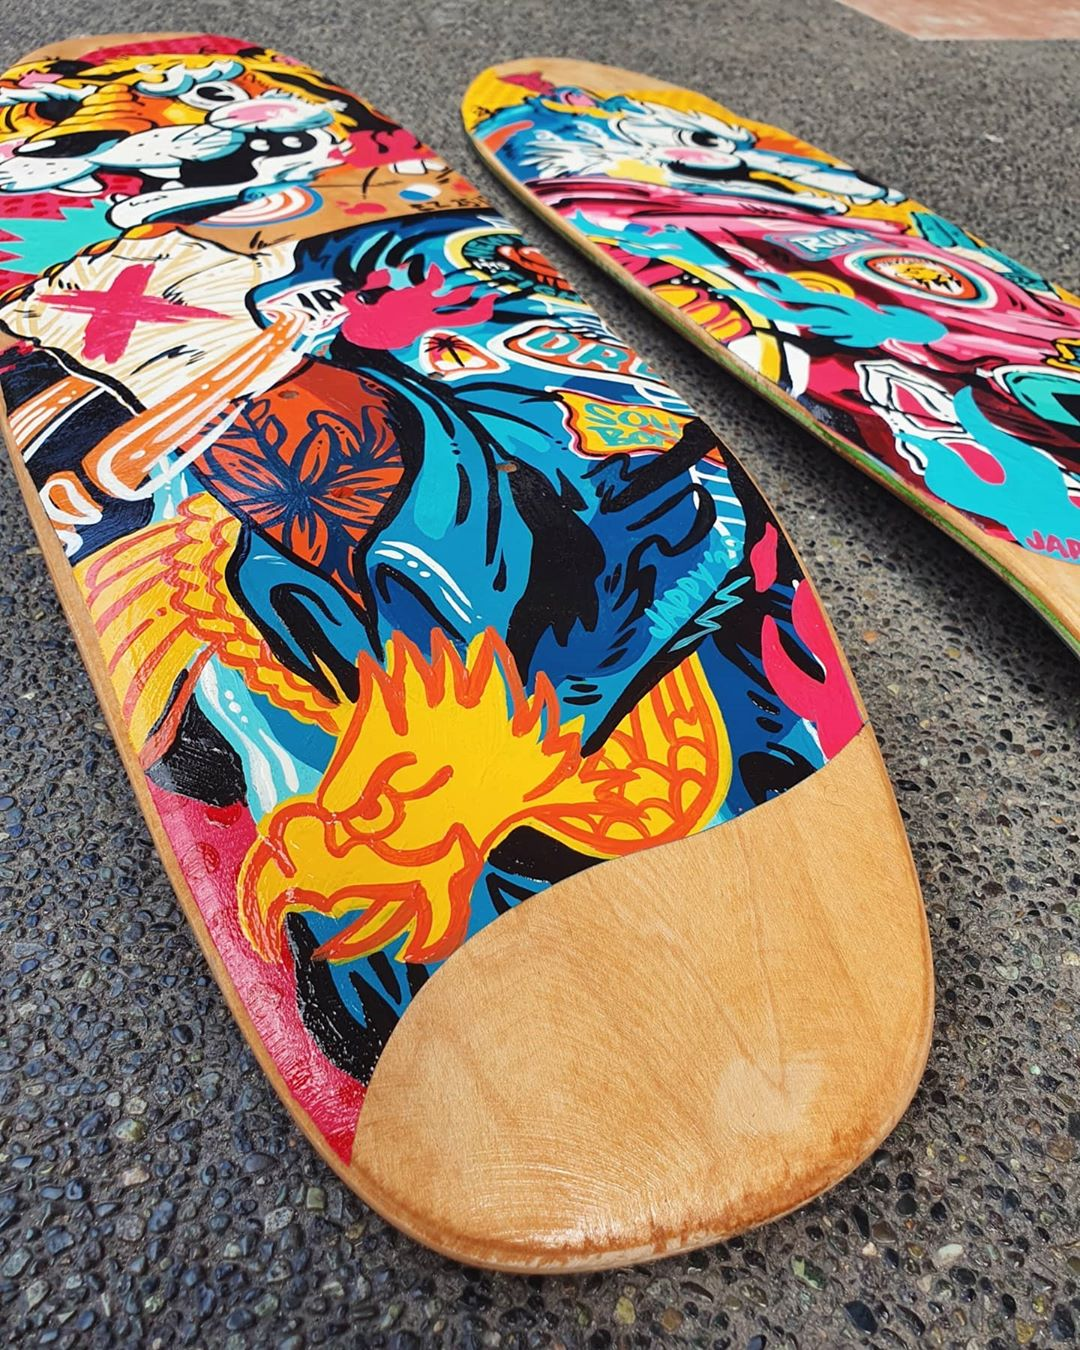 Custom Skateboards By Jappy Agoncillo 4.jpg